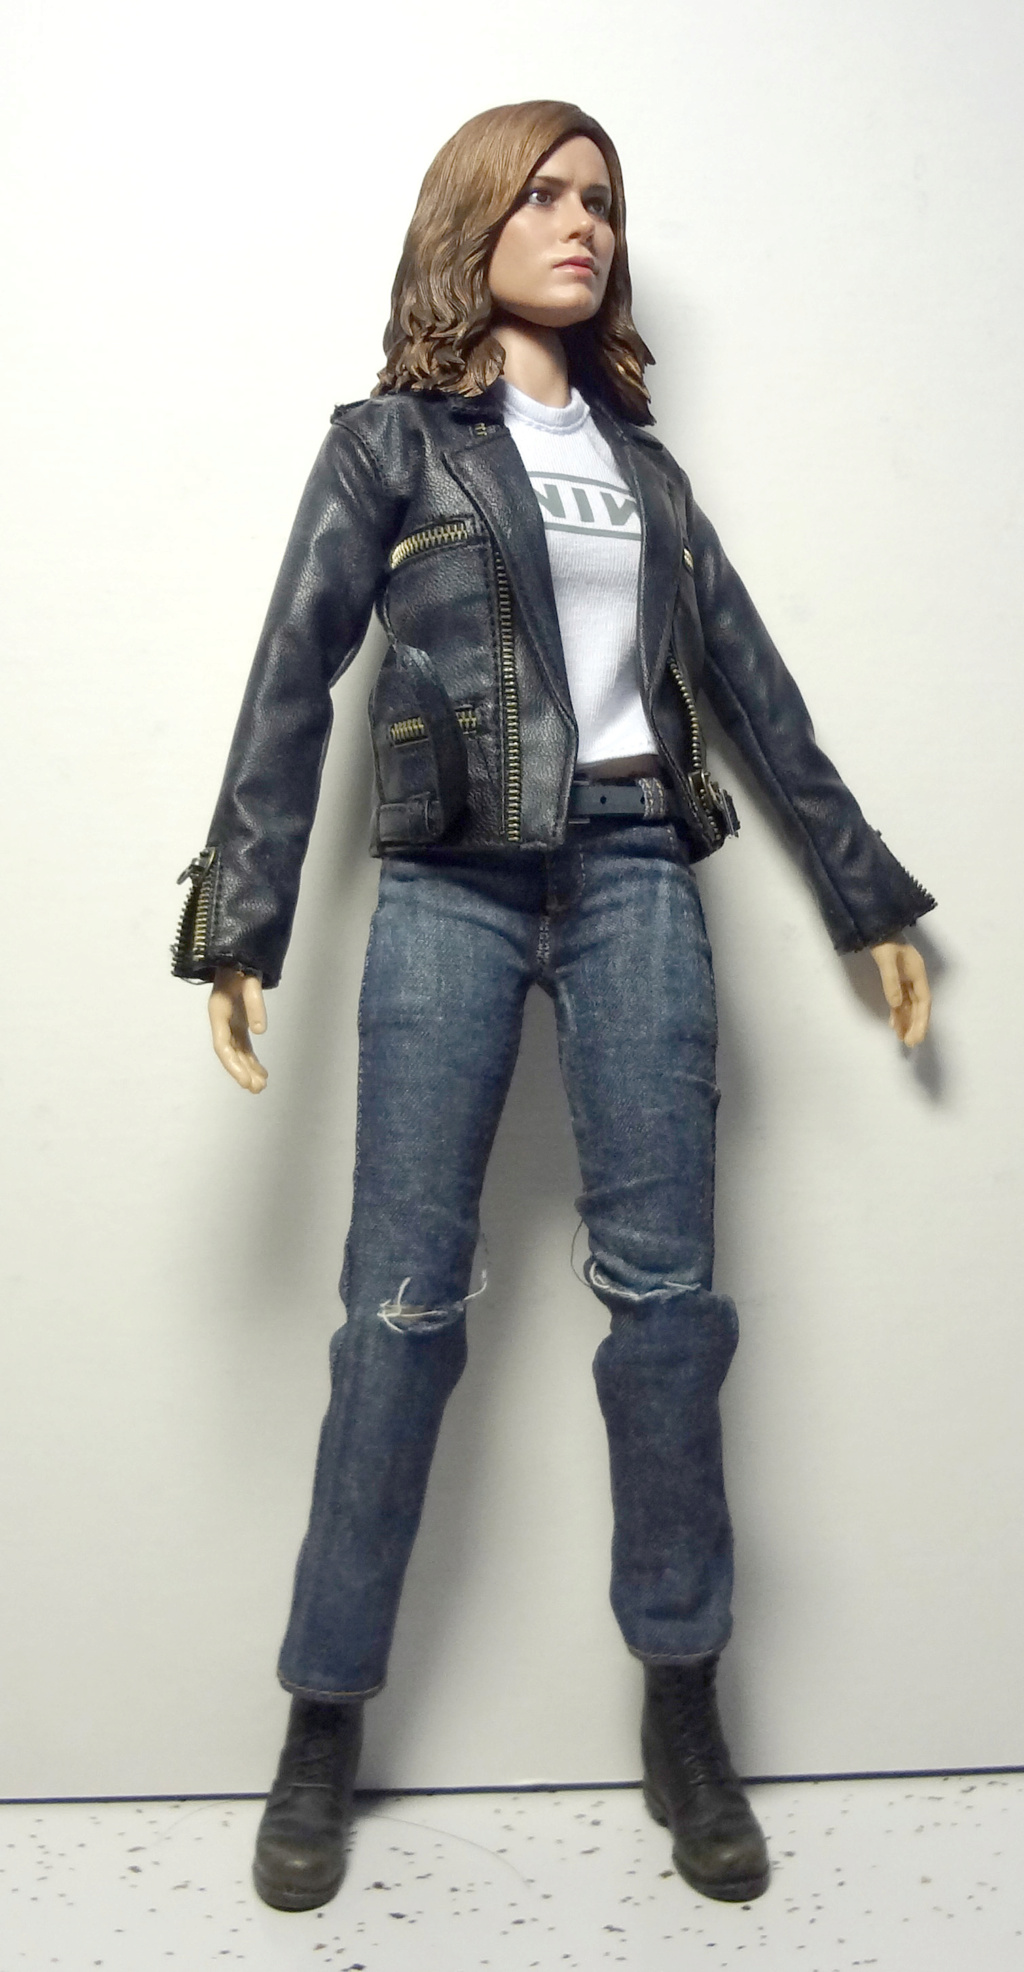 SWToys - NEW PRODUCT: Swtoys FS028 1/6 Scale Danvers figure Dsc00920